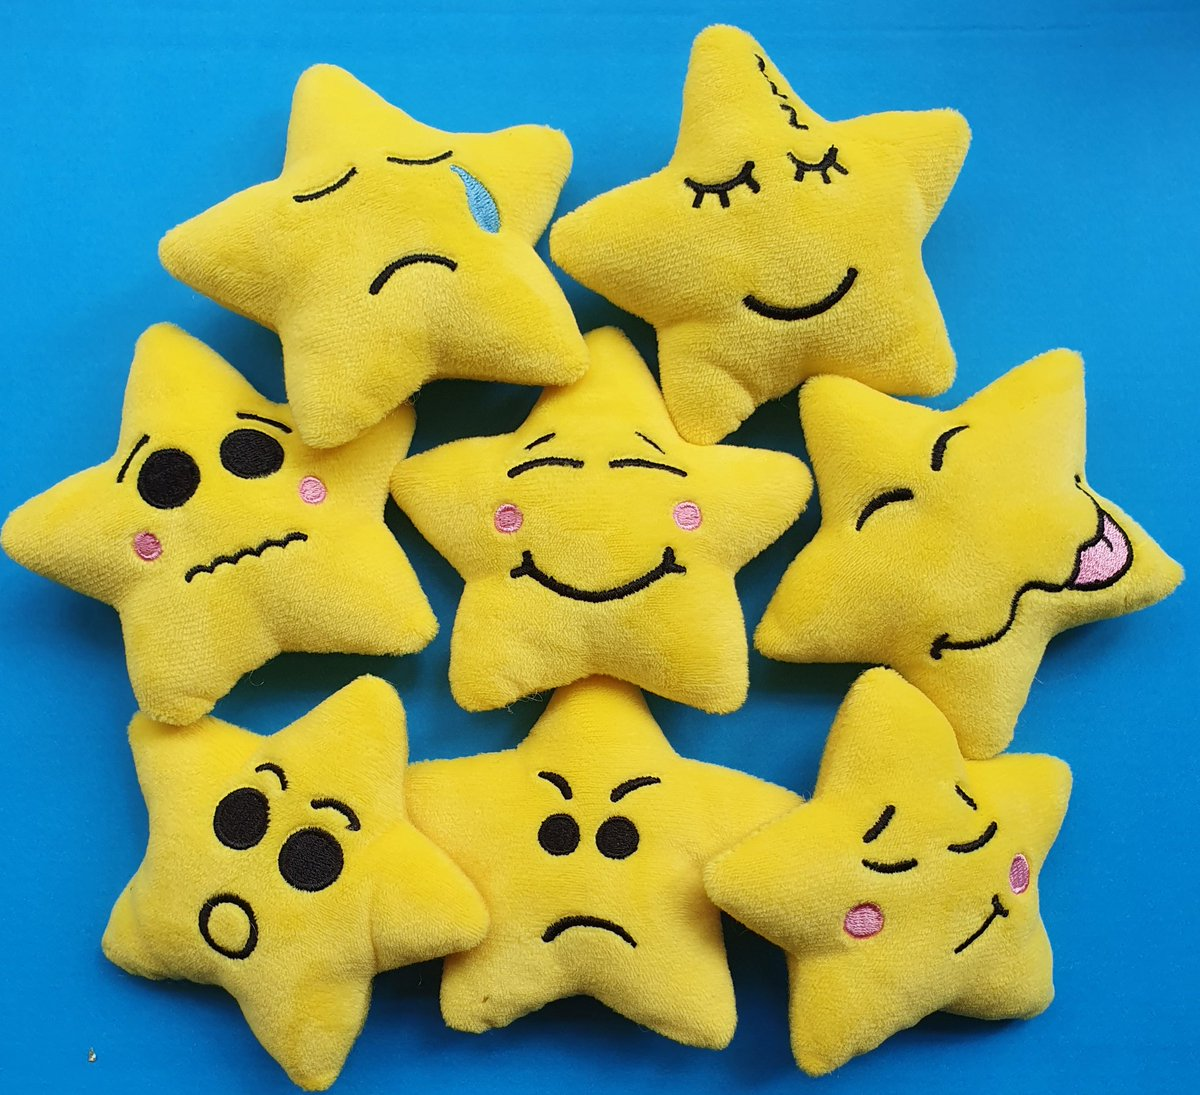 @AFNCCF #SchoolsinMind  My Mood Stars would be of huge benefit if I can help in any way #CAMHS #MotherOfMoodStars